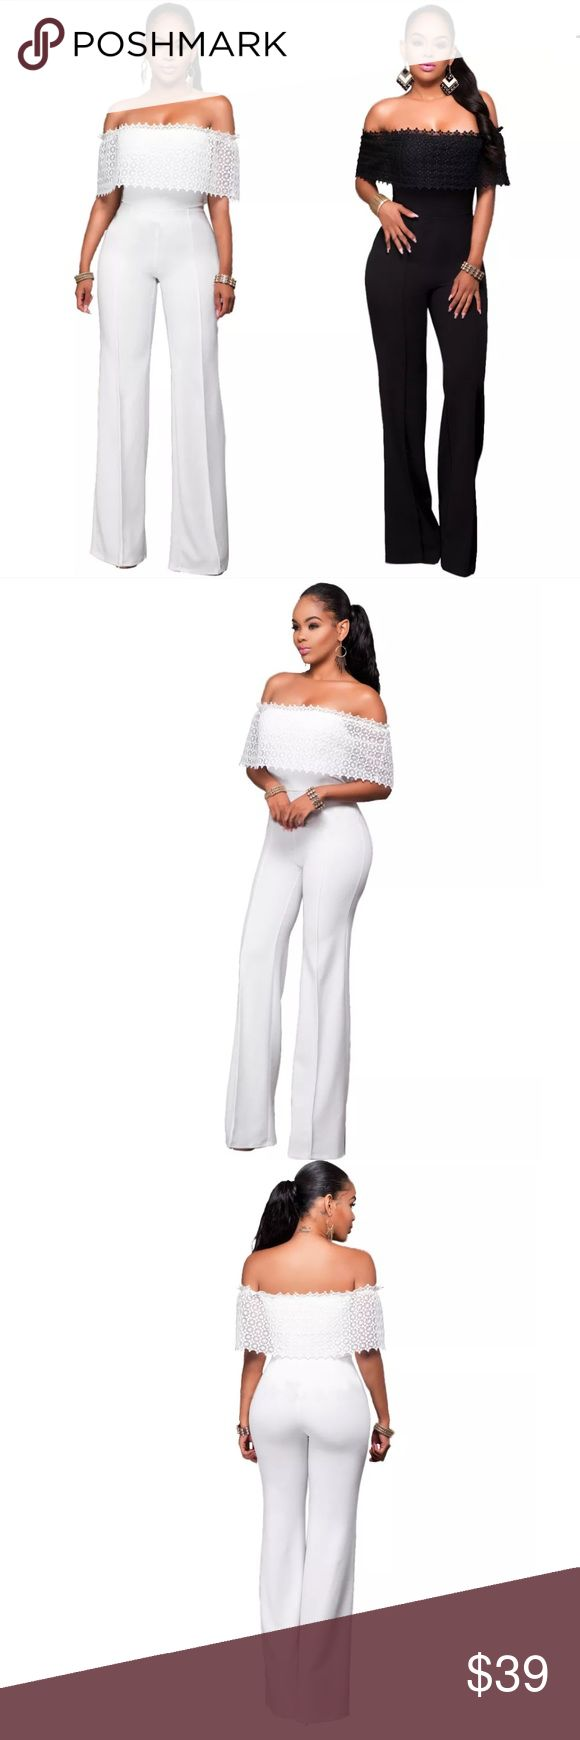 Sultry, Sassy and Sweet Absolutely Stunning Combination. Long trousers Ready to Party Romantic Romper. Elegant white Nylon and Lace showcase your stunning figure. Flattering material very forgiving and stretches where needed. Fit those sexy curves! L. 140cm shoulders 32 Bust 90 waist 72 hips 97 Other